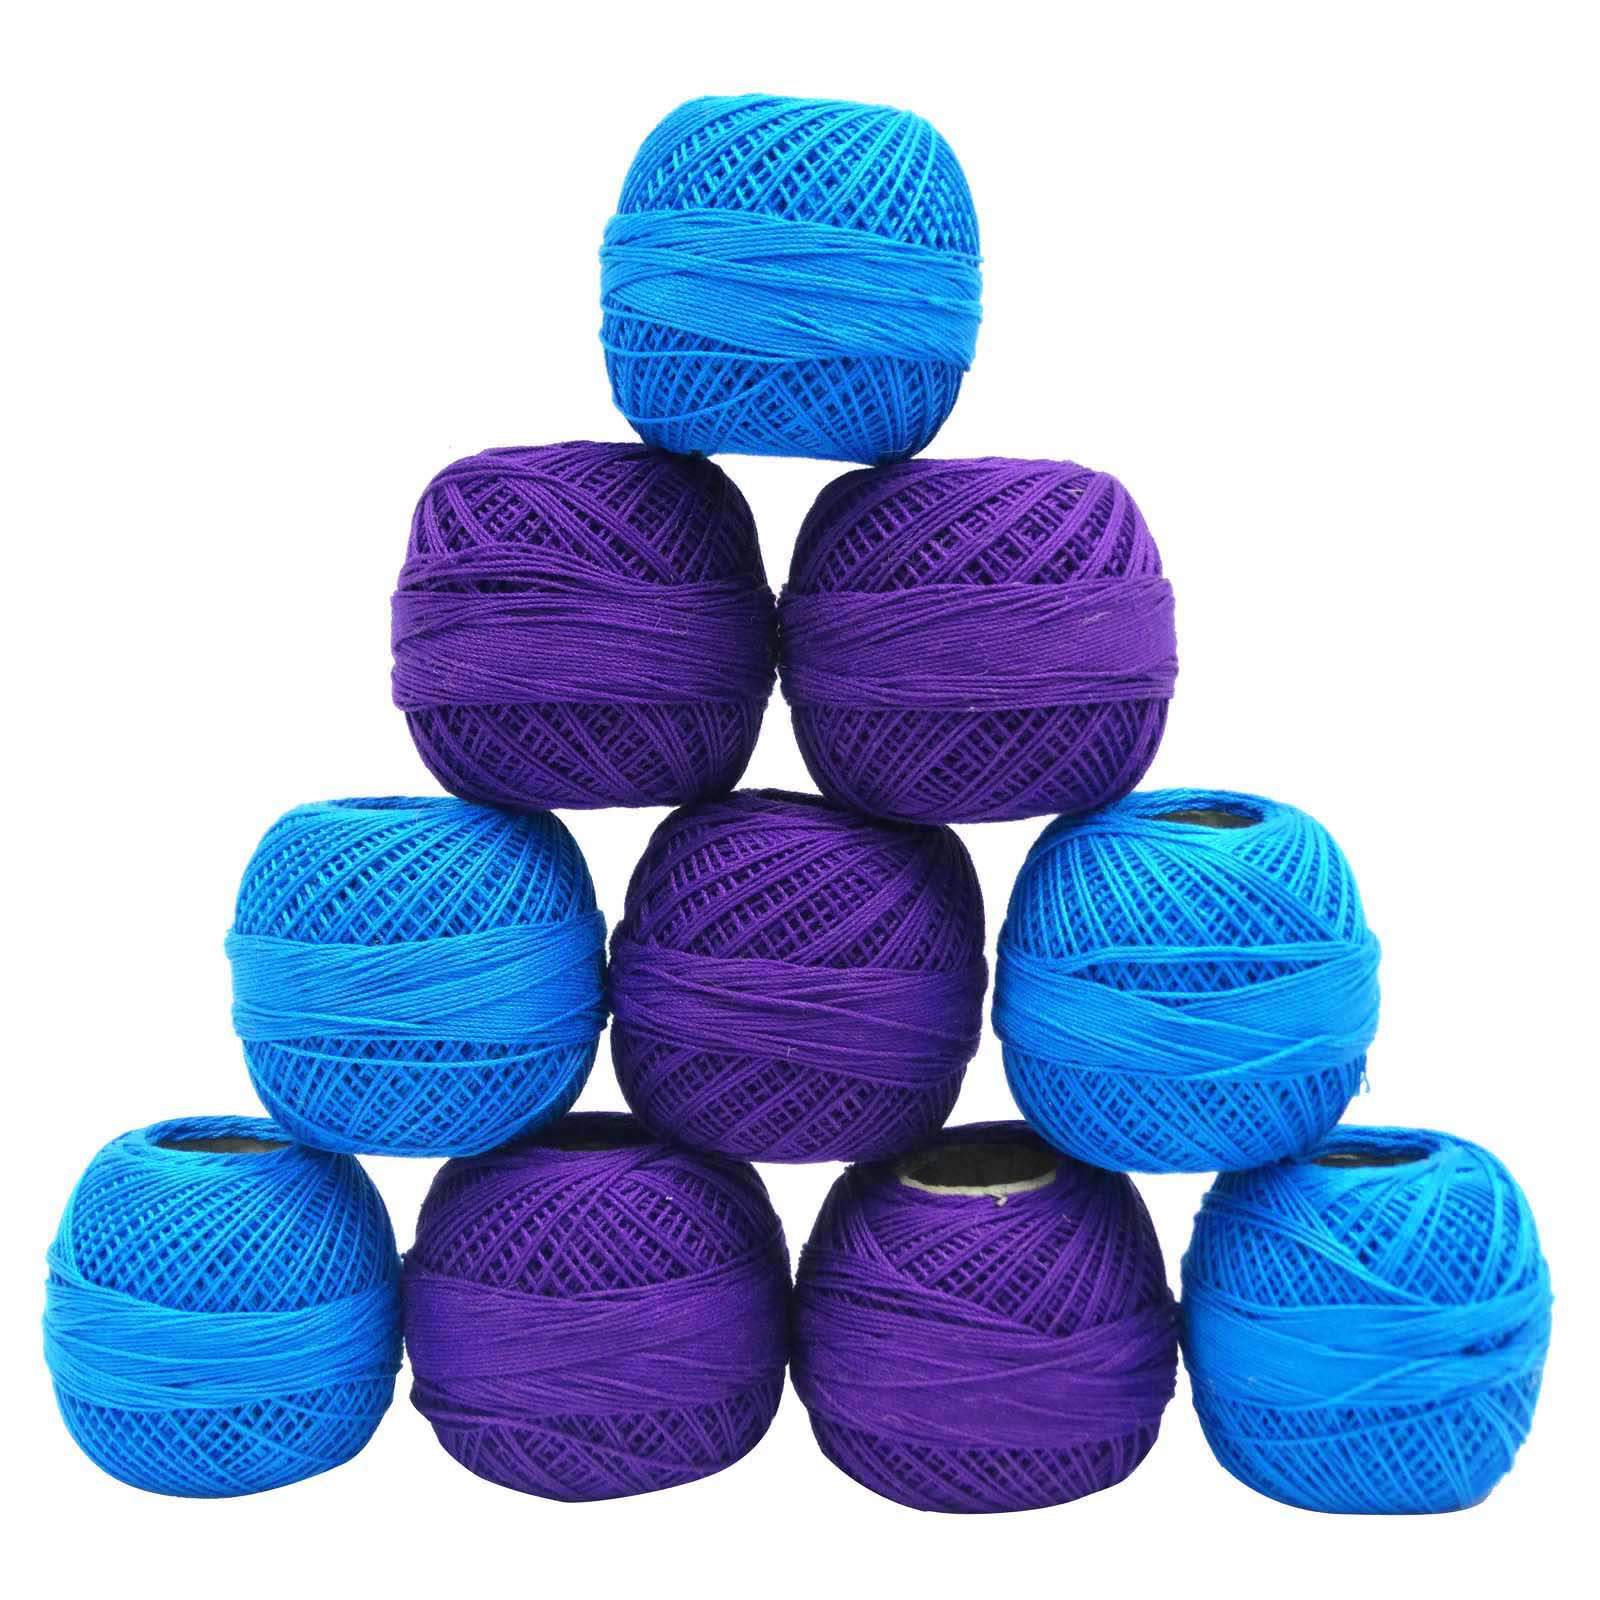 Blue Cotton Crochet Thread Skein Yarn Kniting Embroidery